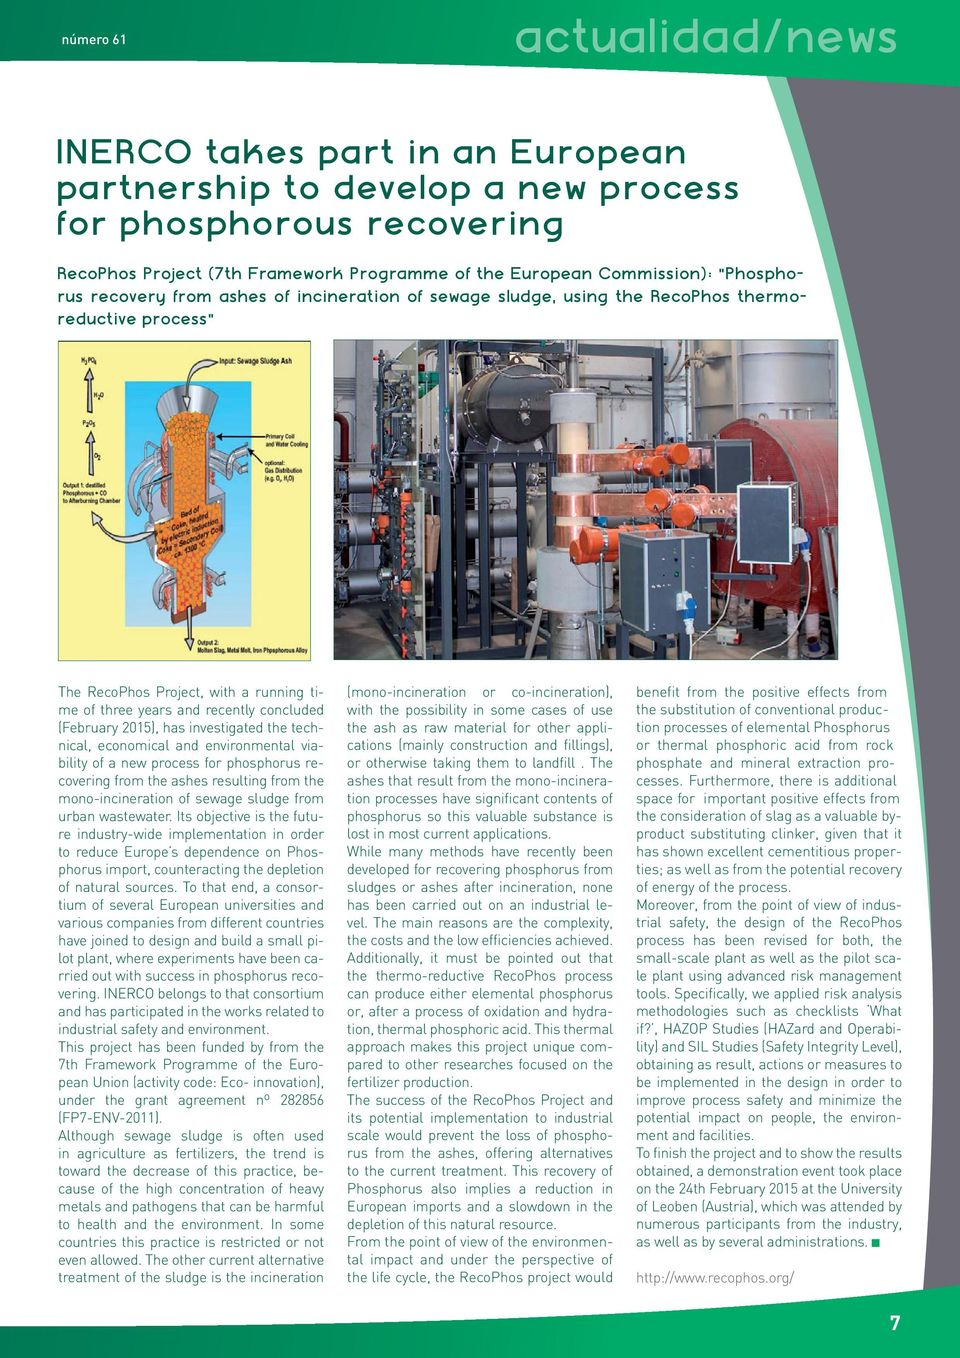 2015), has investigated the technical, economical and environmental viability of a new process for phosphorus recovering from the ashes resulting from the mono-incineration of sewage sludge from